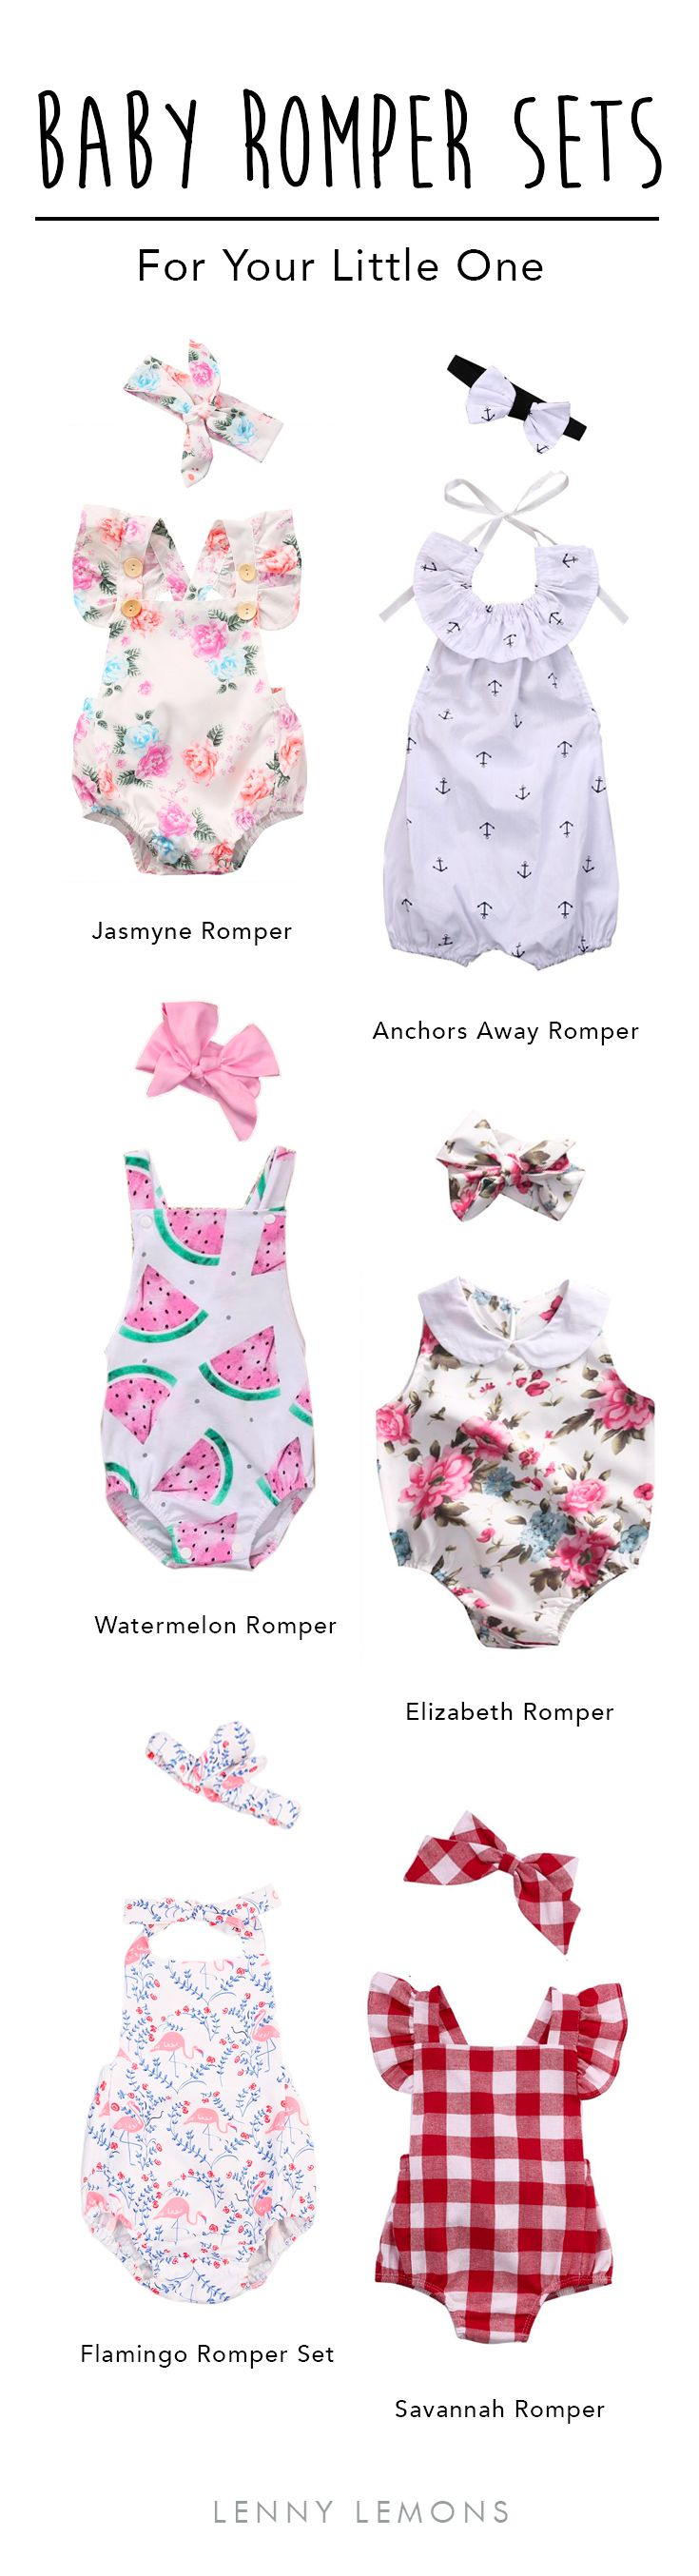 UP TO 70% OFF + FREE SHIPPING. Perfect summer sunshine outfits for your baby girl. Choose the right romper for her. Choose between watermelon, anchors and flowers. Summer outfits for baby girl. Lenny Lemons, baby and toddler apparel.